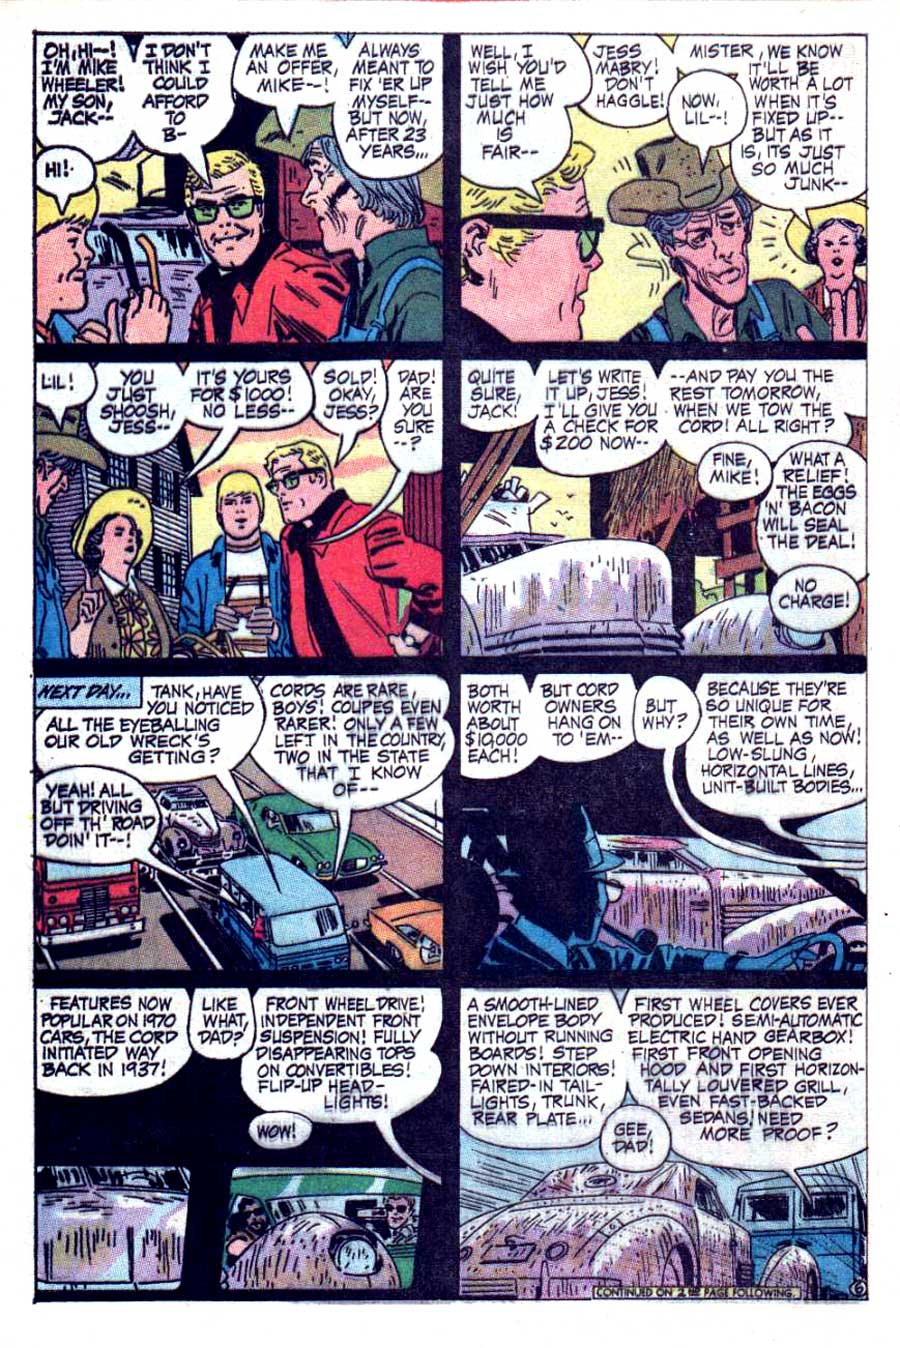 Hot Wheels v1 #5 dc 1970s bronze age comic book page art by Alex Toth